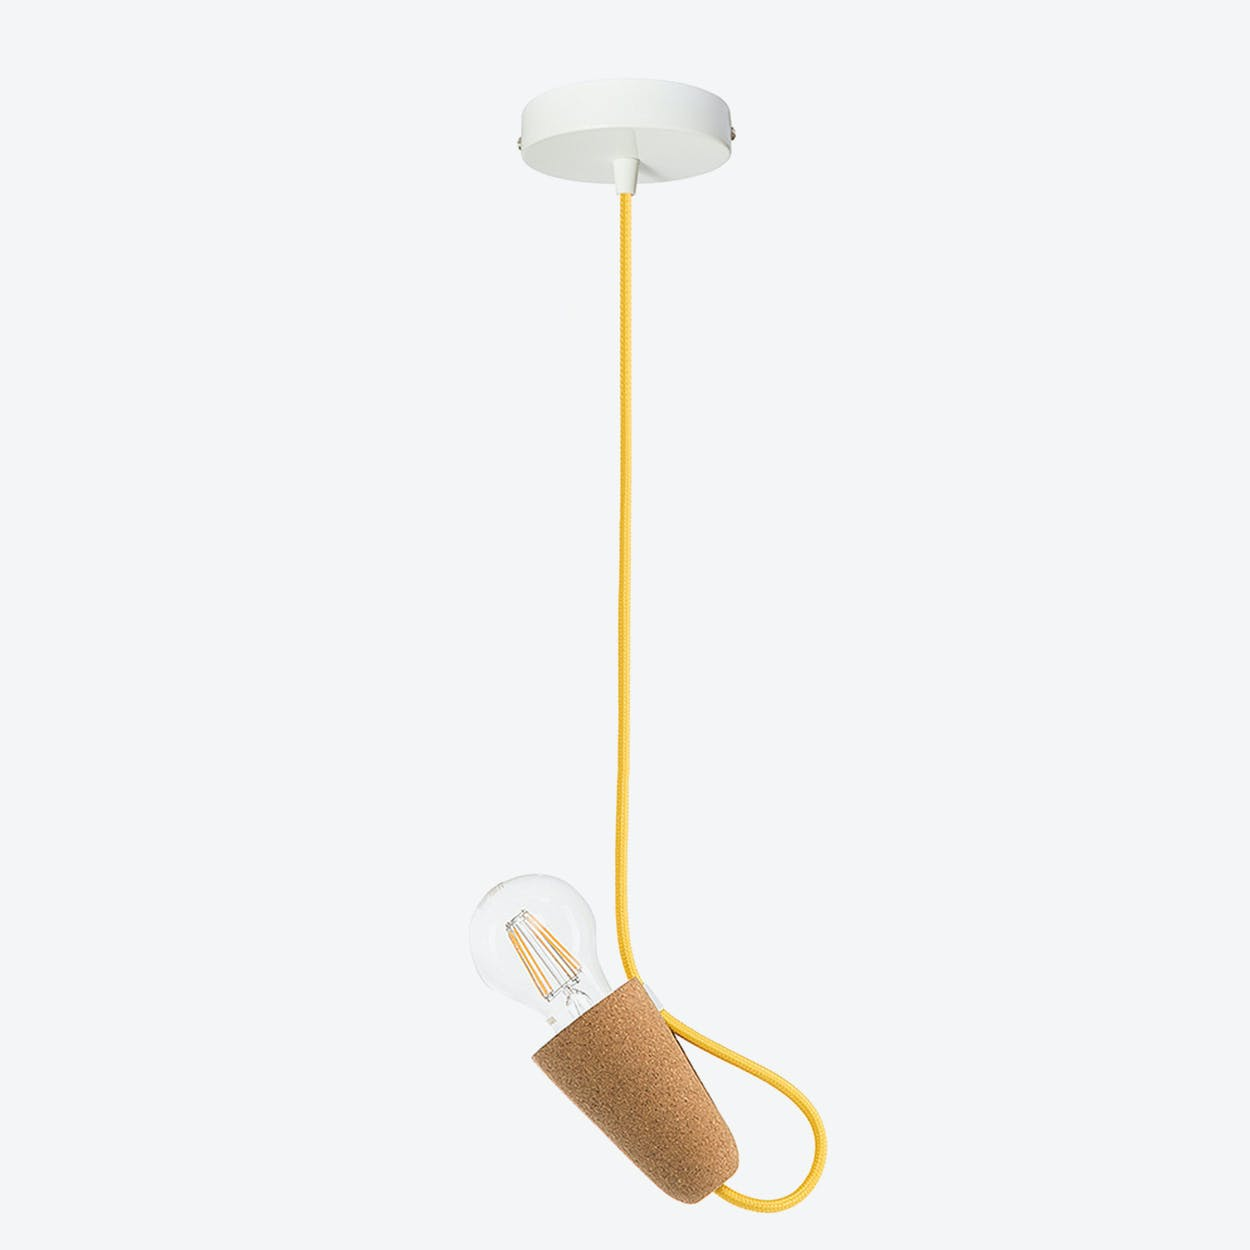 Sininho Pendant Lamp in Light Cork & Yellow